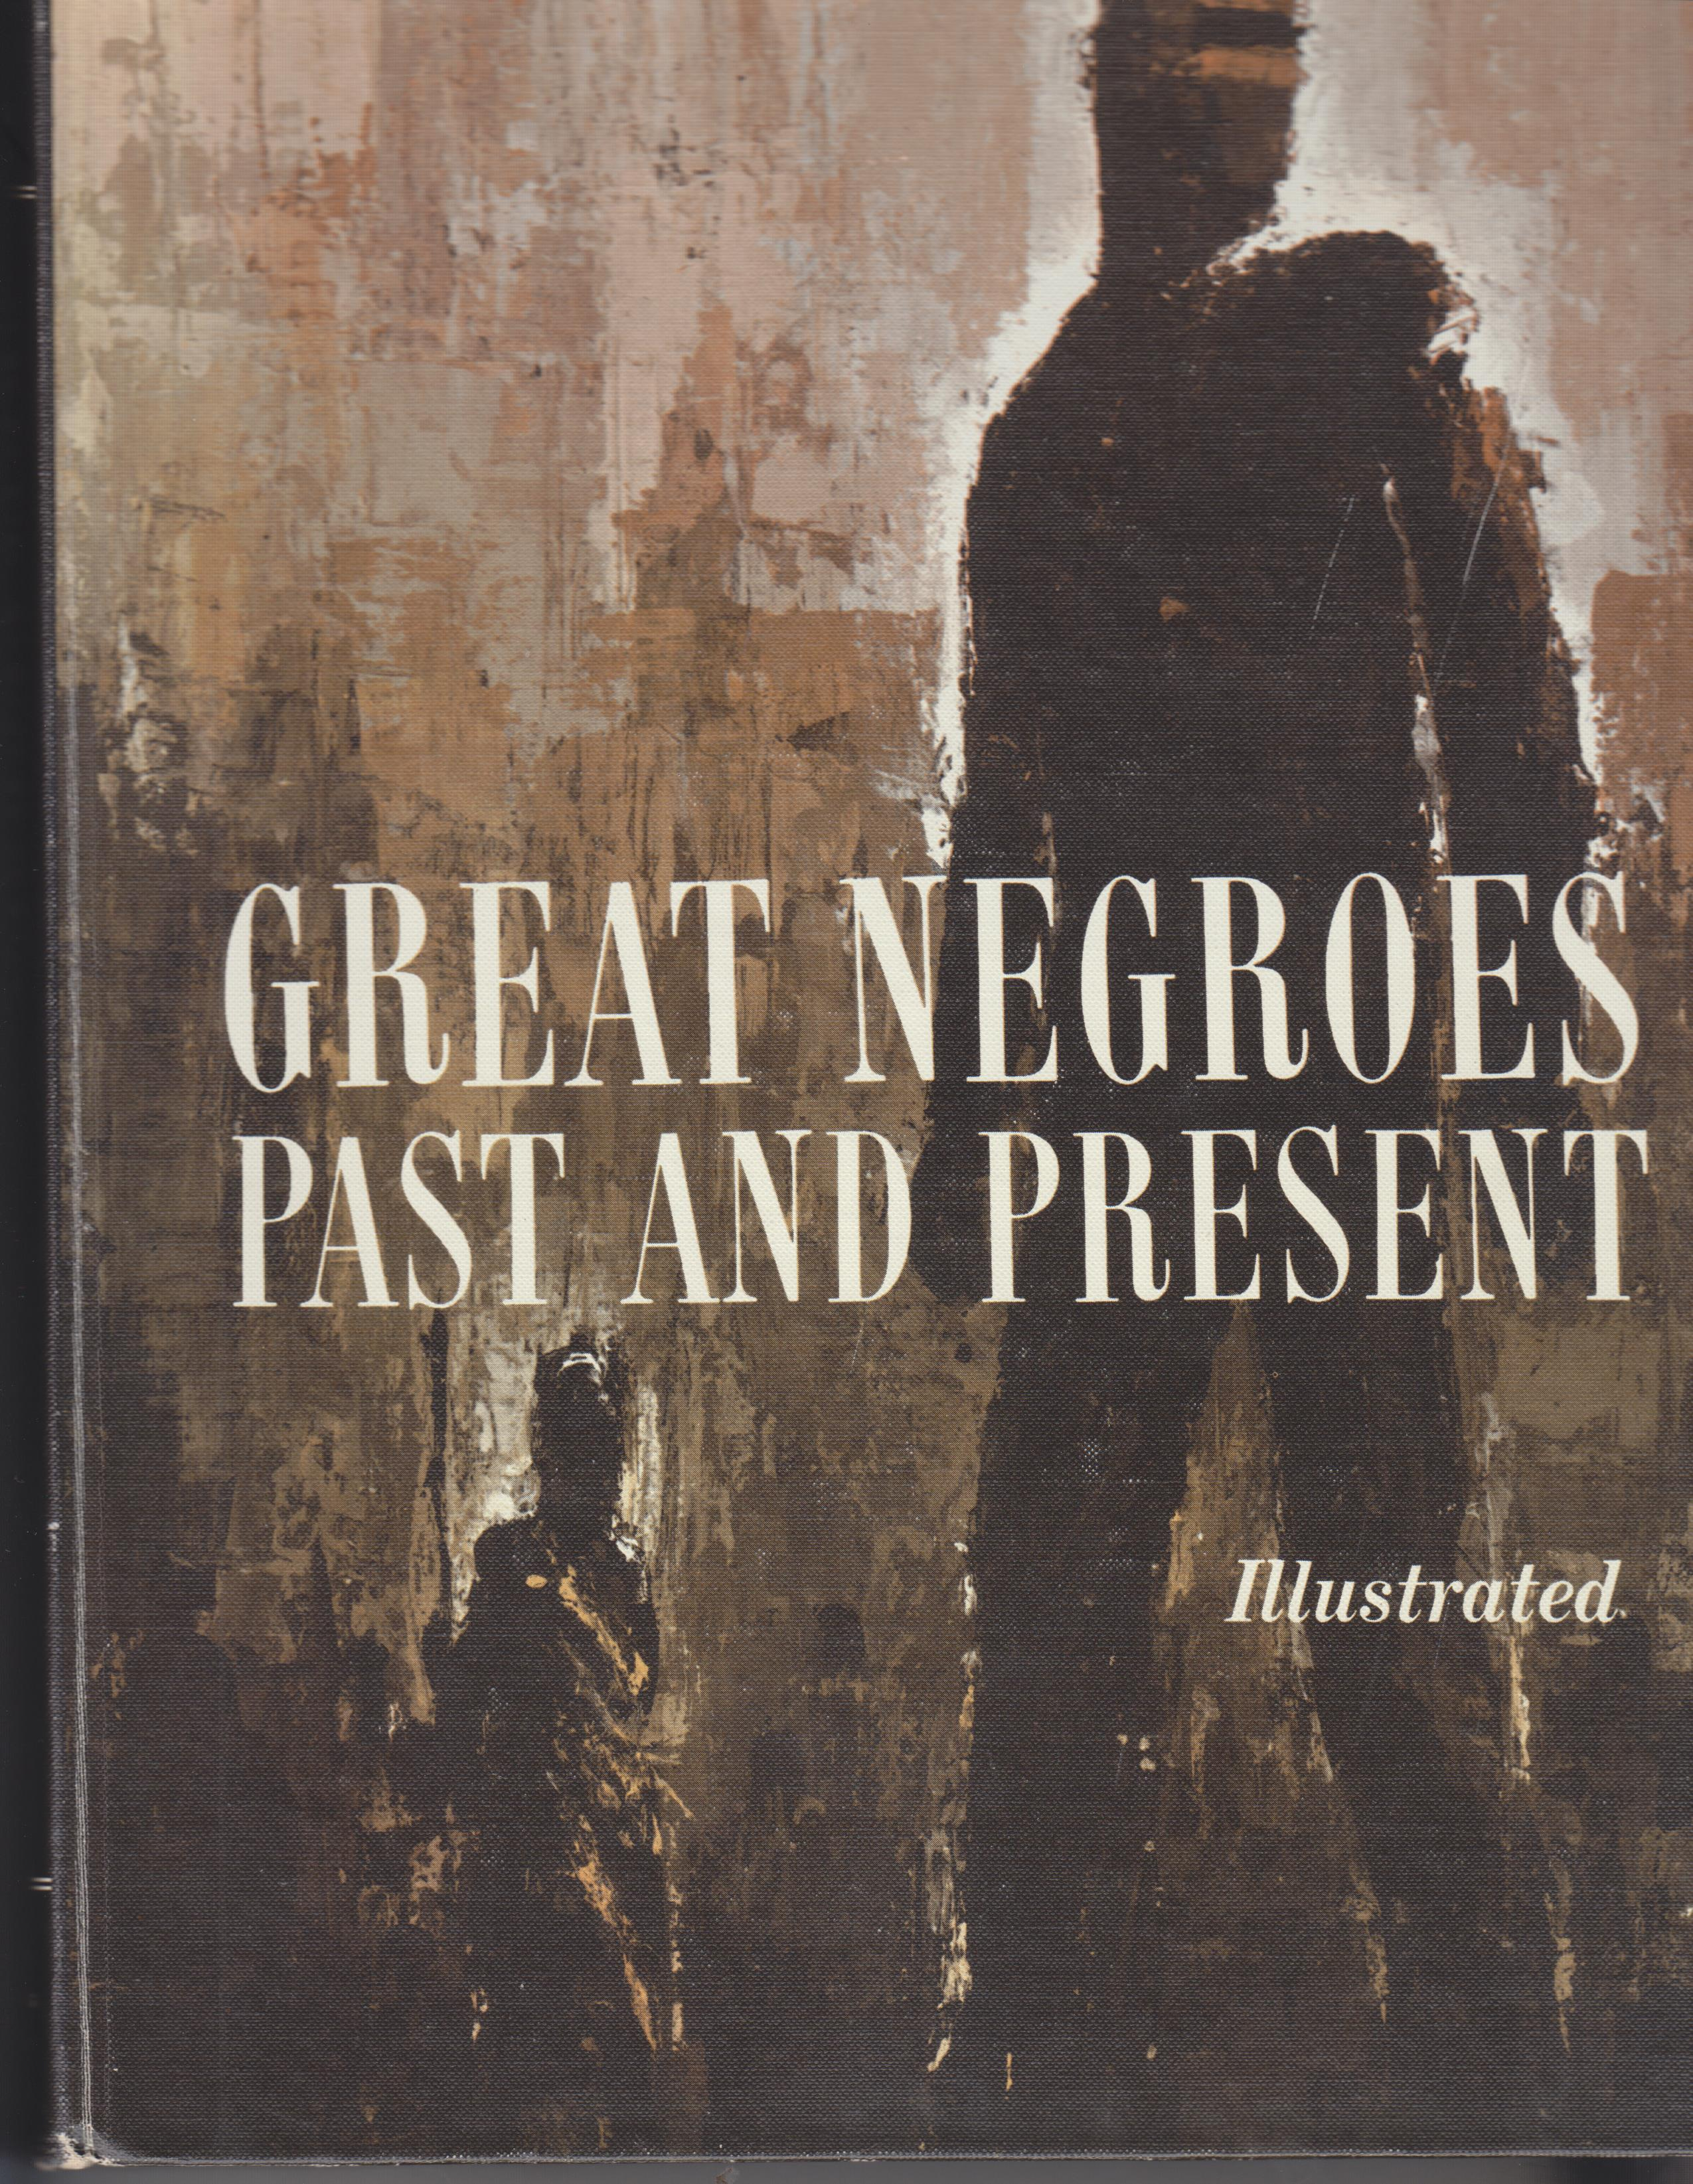 Image for Great Negroes Past And Present